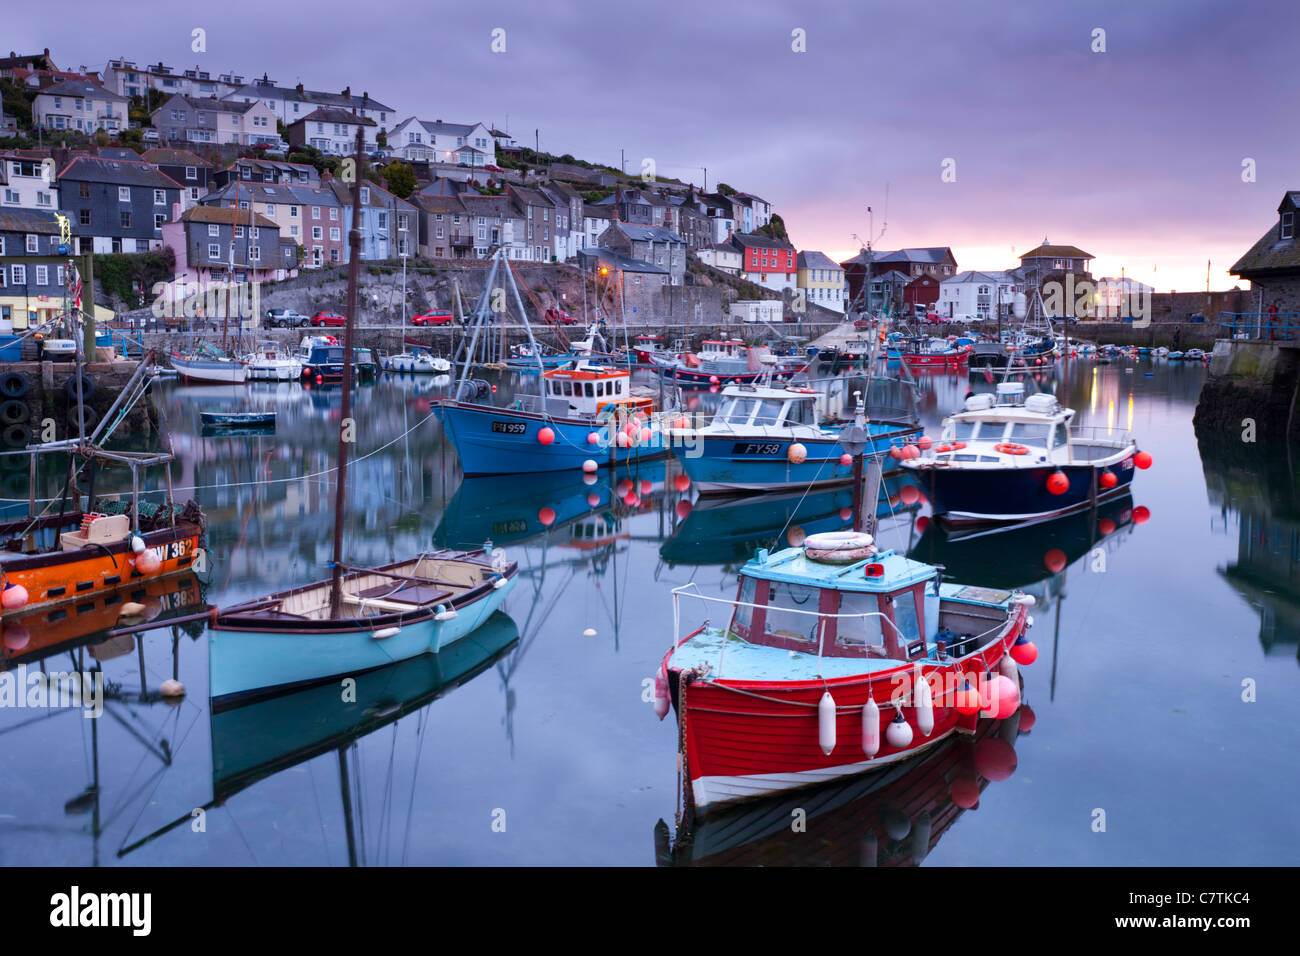 Sunrise over the picturesque harbour at Mevagissey, Cornwall, England. Spring (May) 2011. - Stock Image